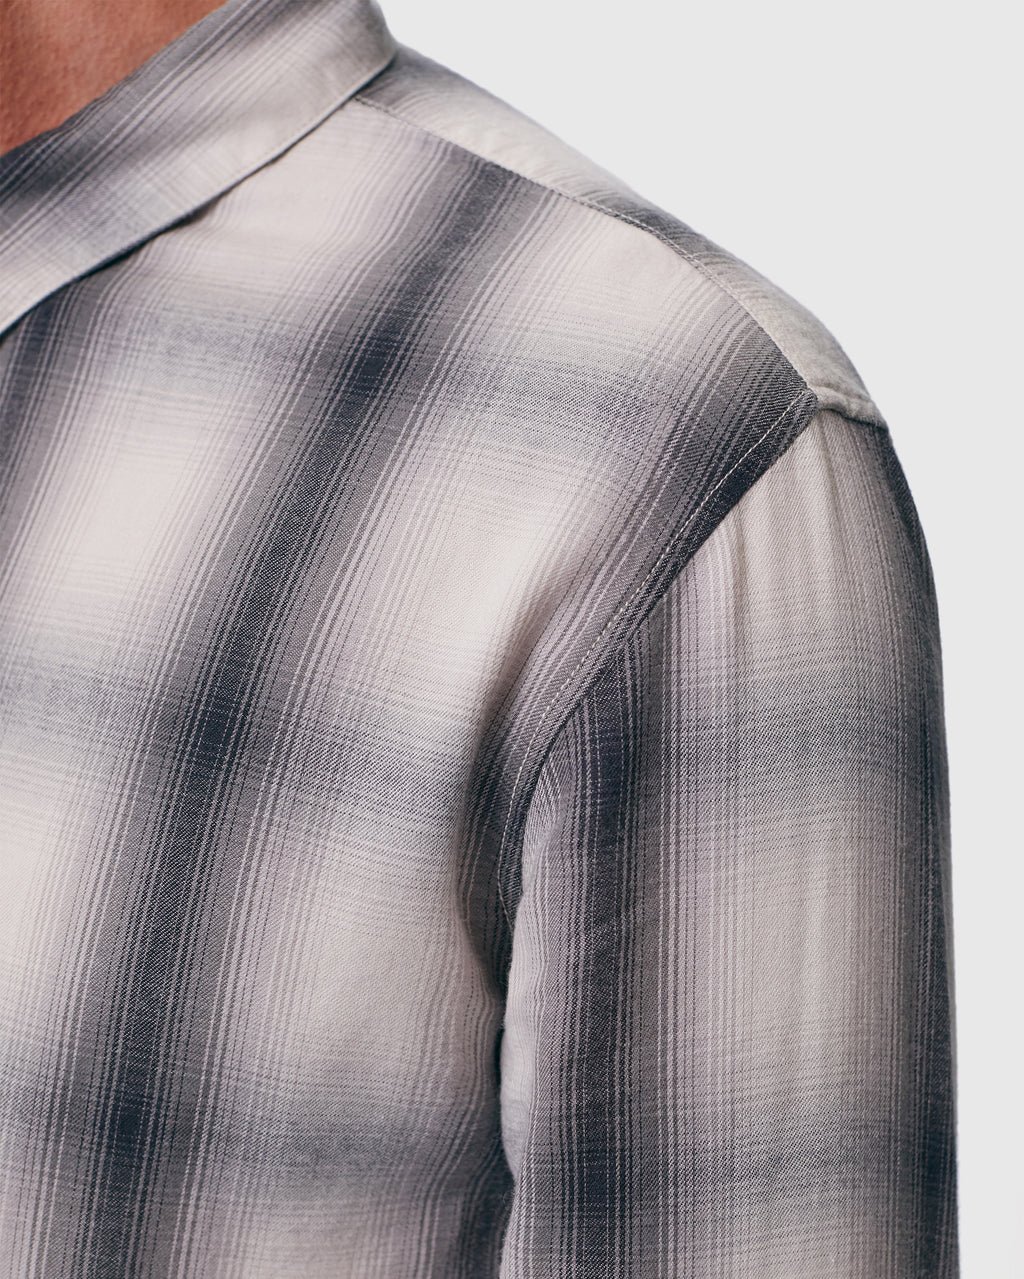 The Arias Shirt in Grey Plaid